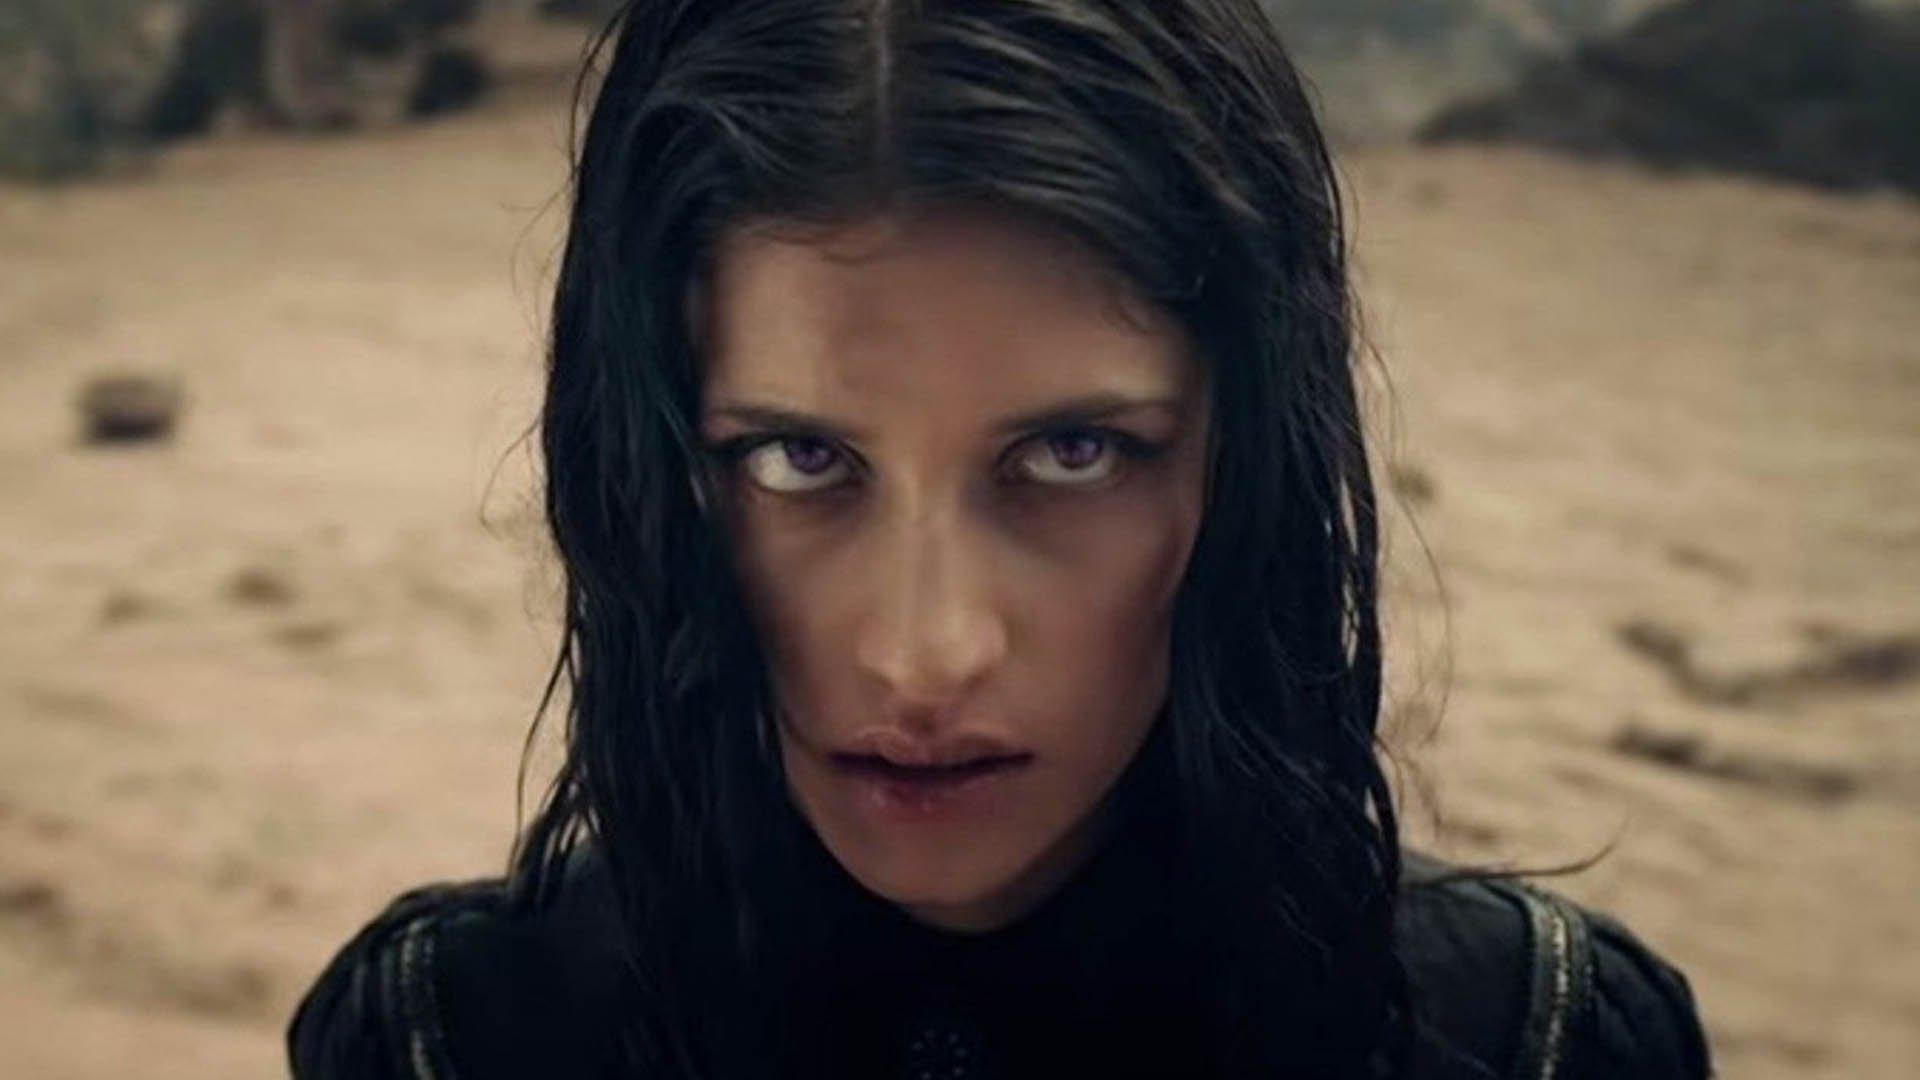 Anya Chalotra è Yennefer in The Witcher